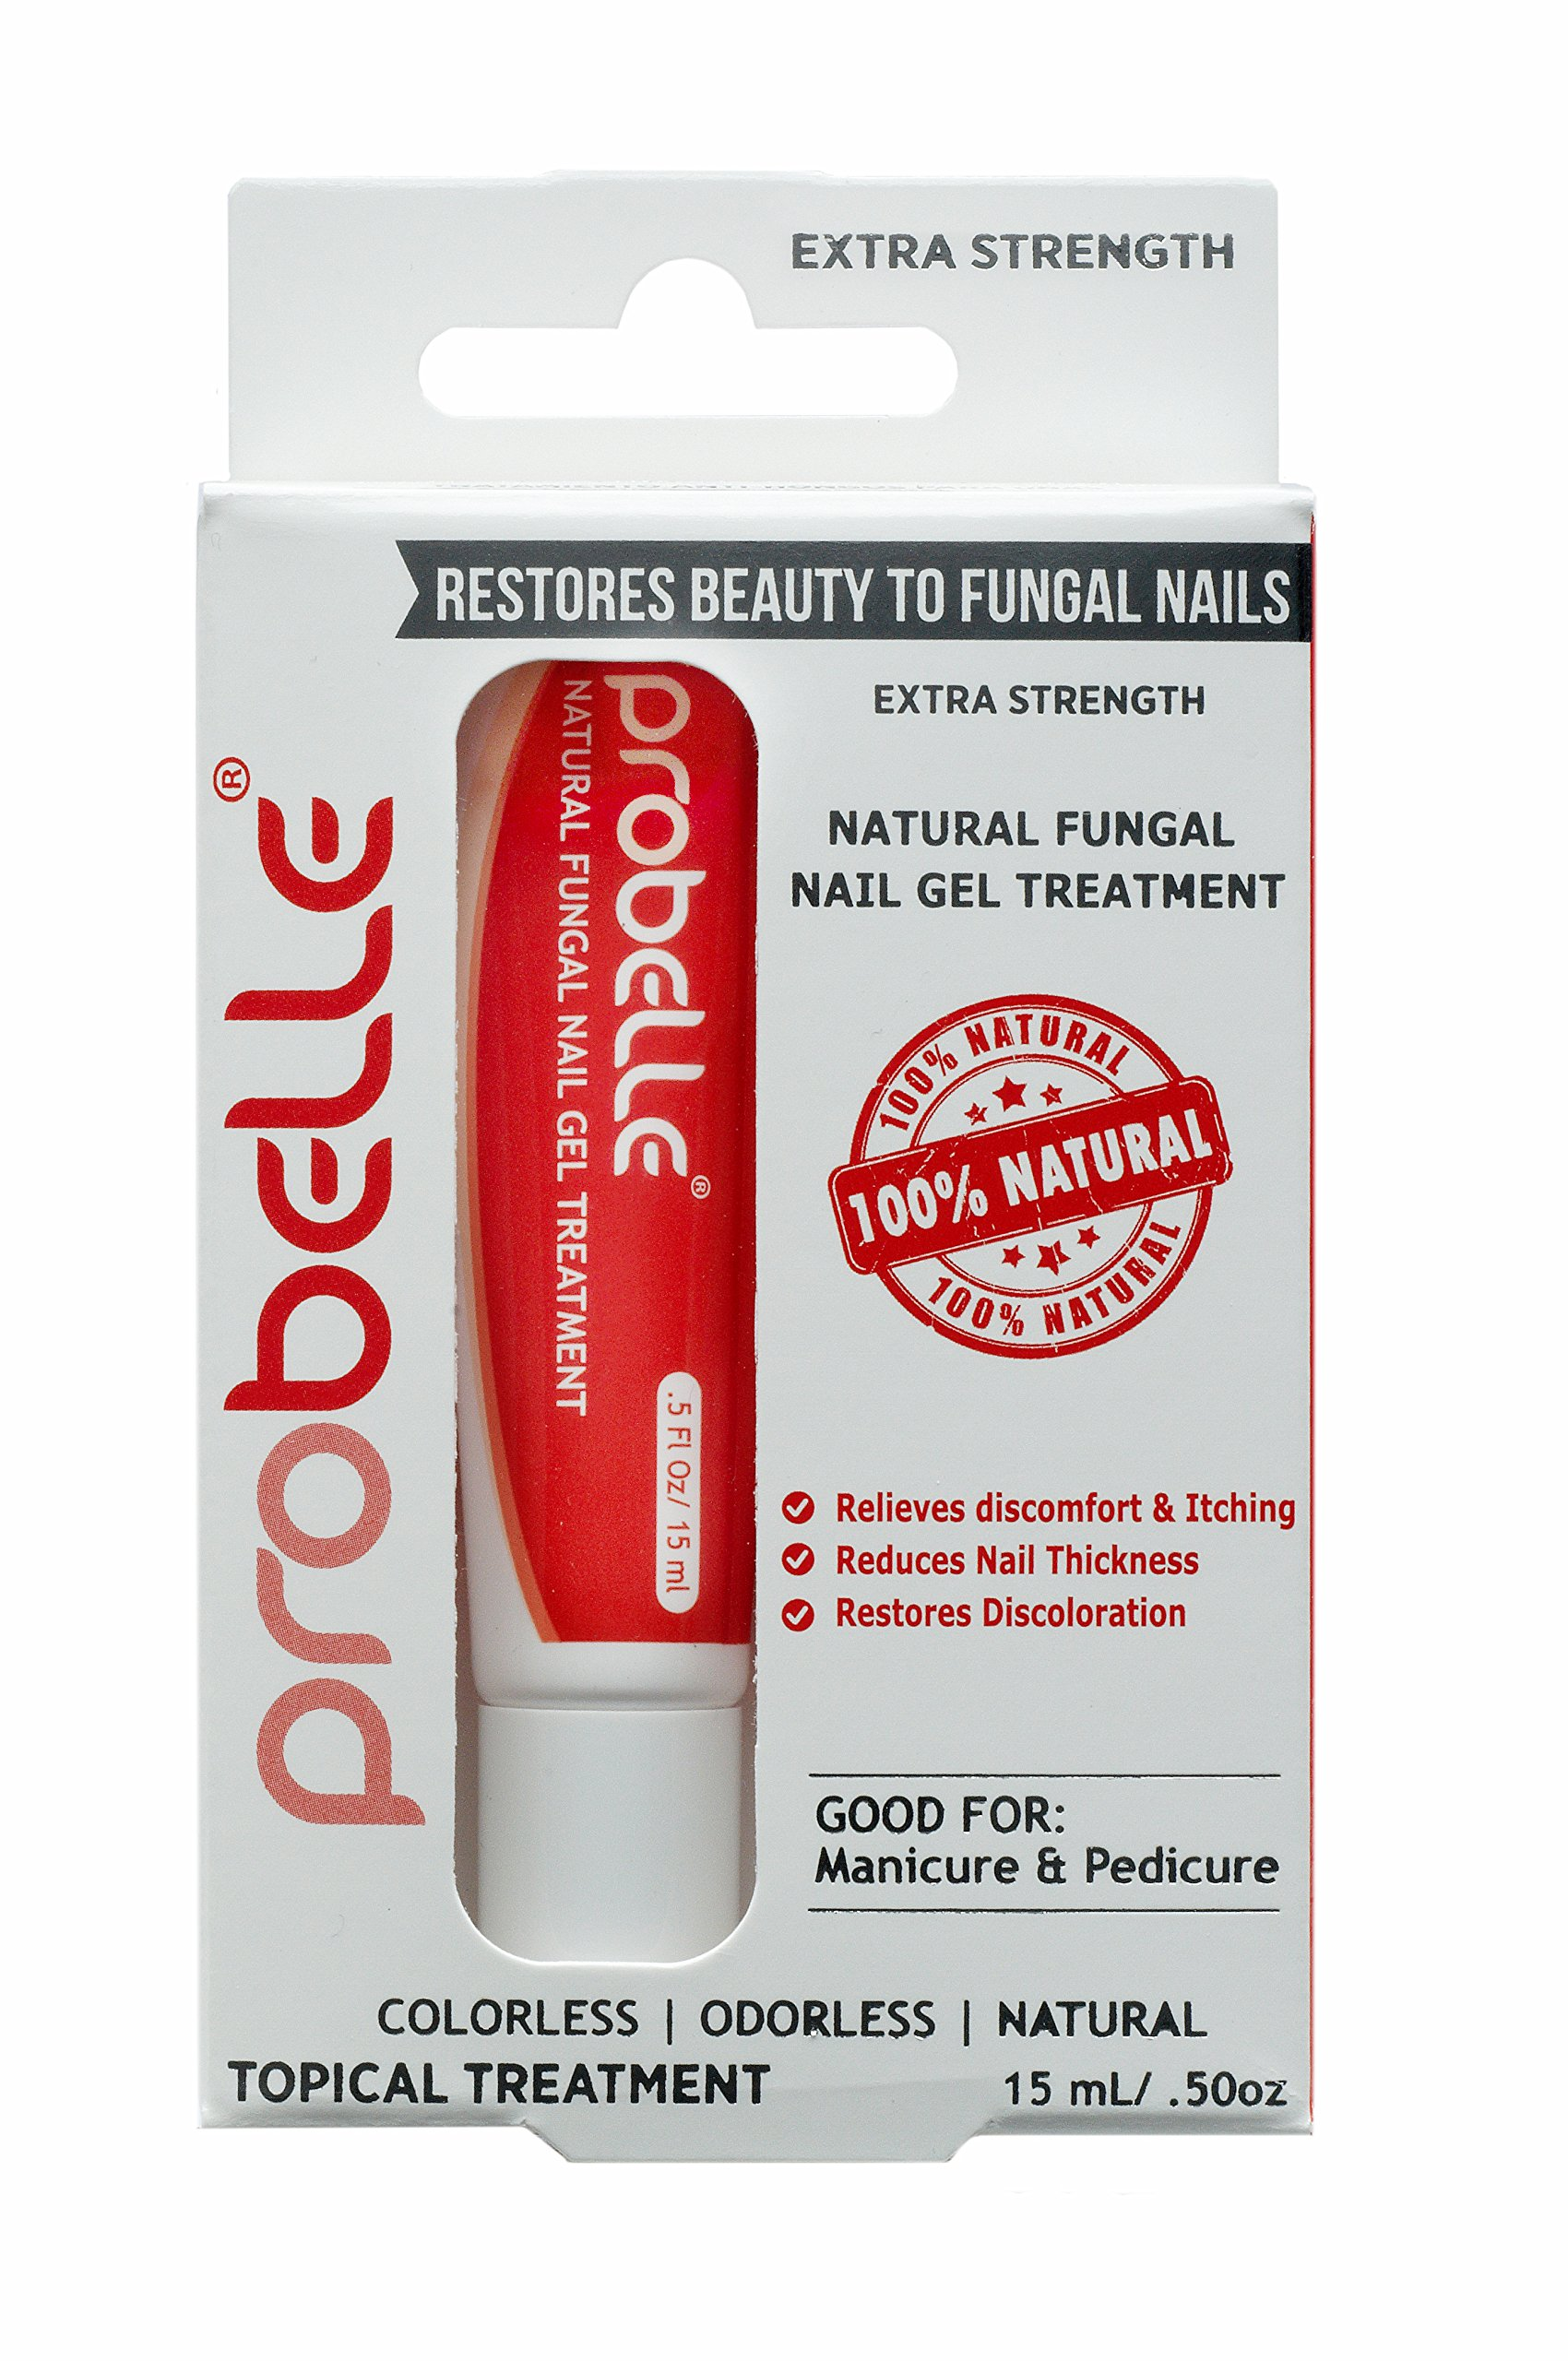 """Probelle """"Extra Strength"""" Natural Fungal Nail Gel Topical Treatment, Anti Fungus Nail Treatment, Restores Toenail Fungus, Clear, .5 oz - 15mL (Patented Formula & Clinically Tested)"""